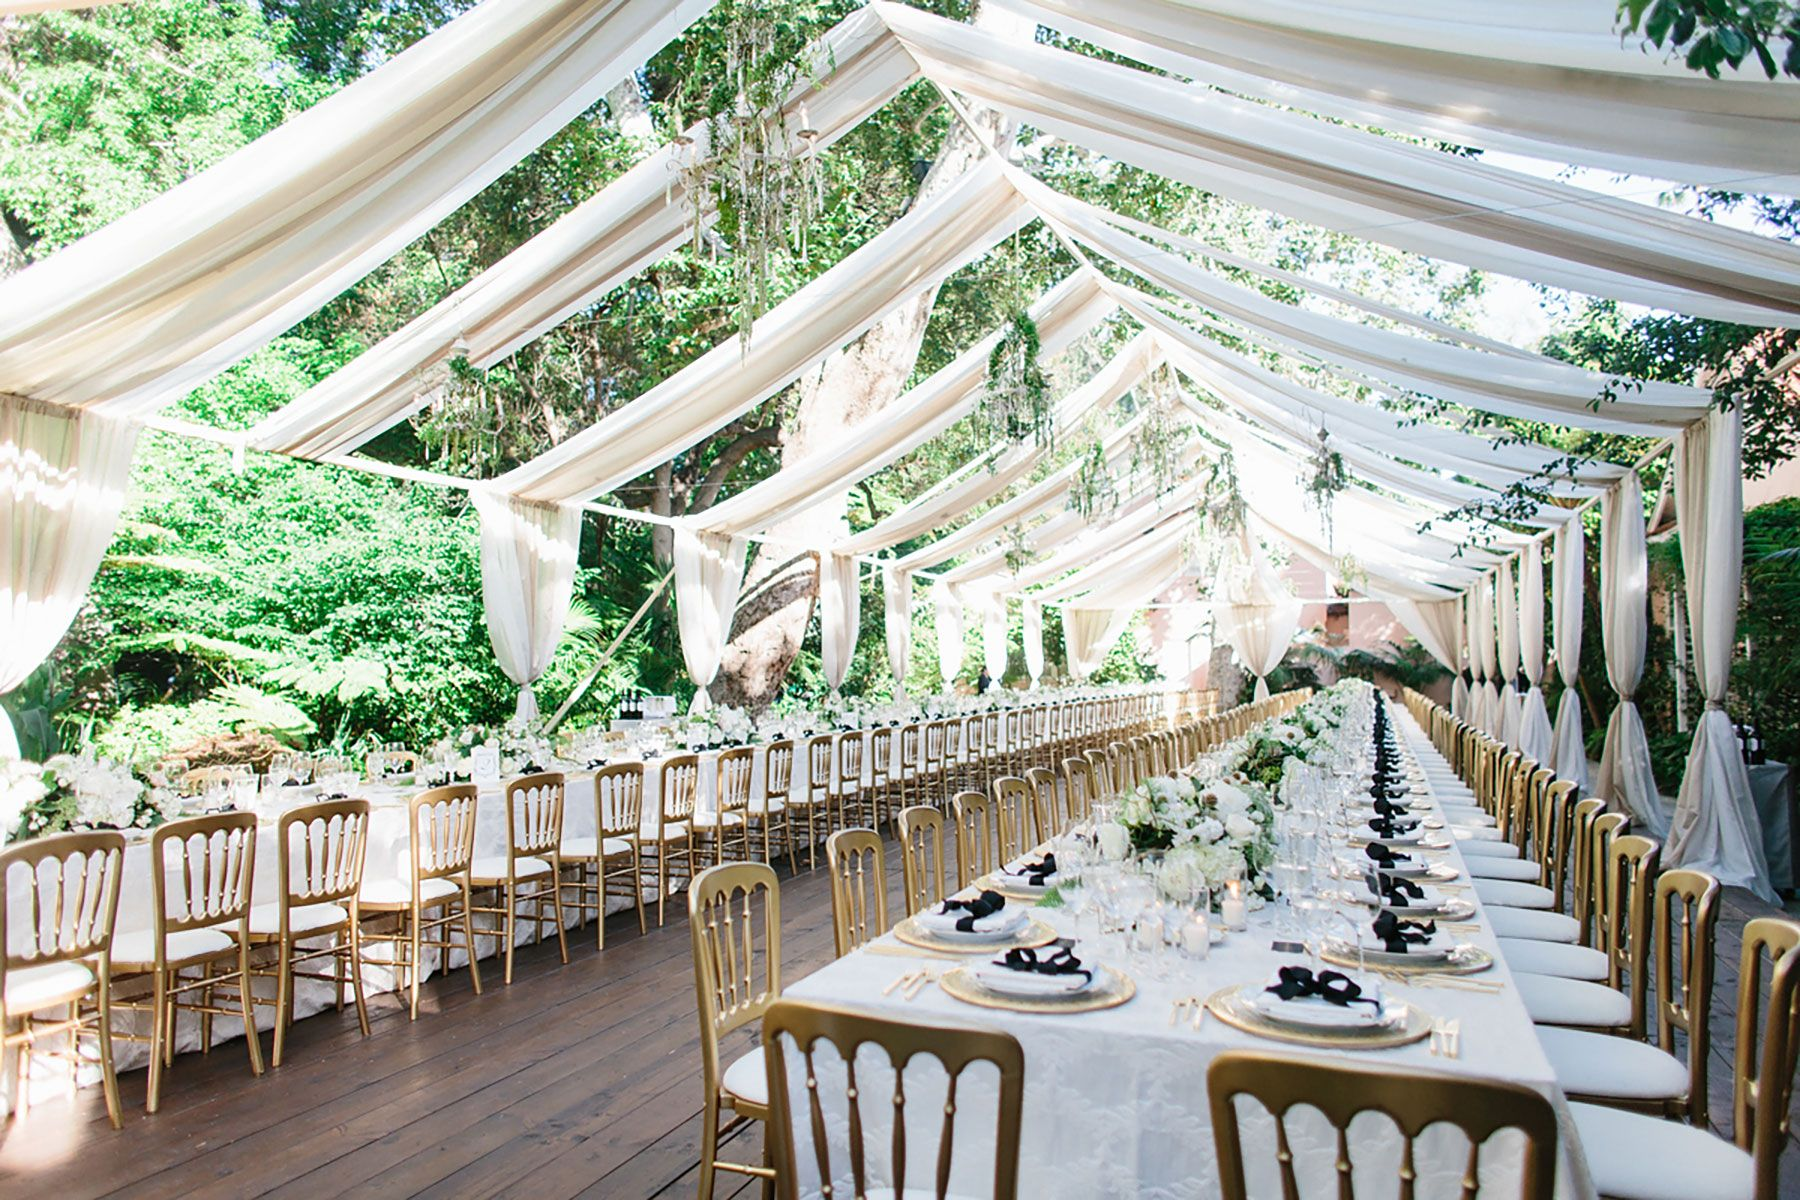 Elegant Garden Wedding In This Romantic Swan Lake Ceremony At The Hotel Bel Air An Aisle Lined With Cream Petals Led To An Al Air Tent Hotel Bel Air Wedding